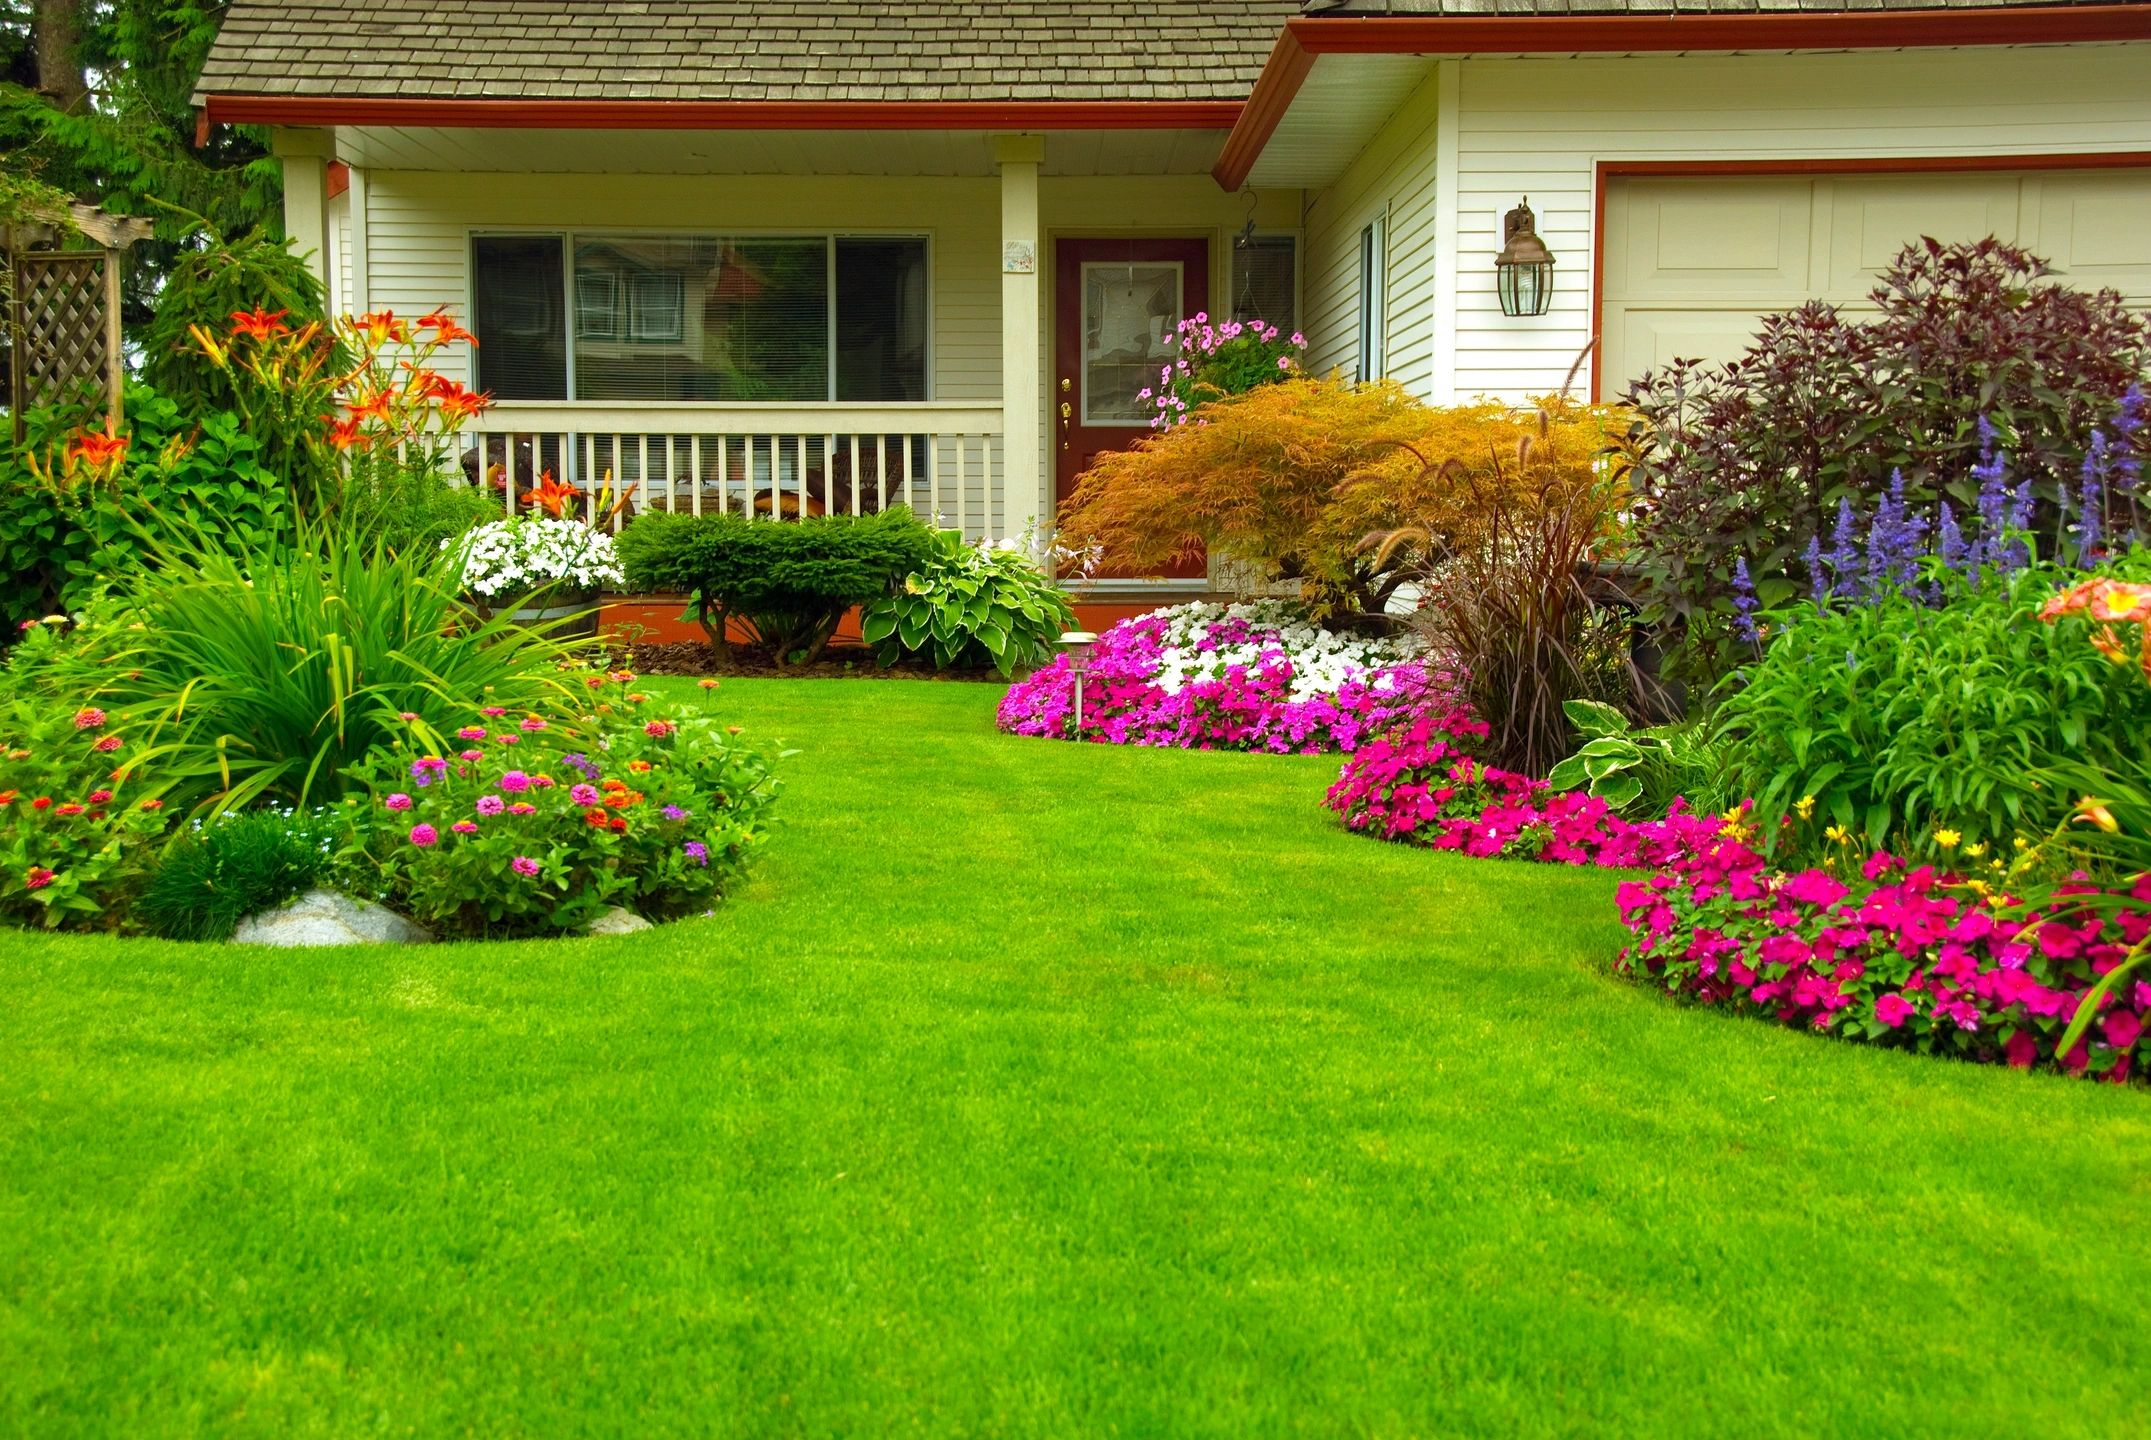 Landscaping and Lawn Maintenance Services Northern WI